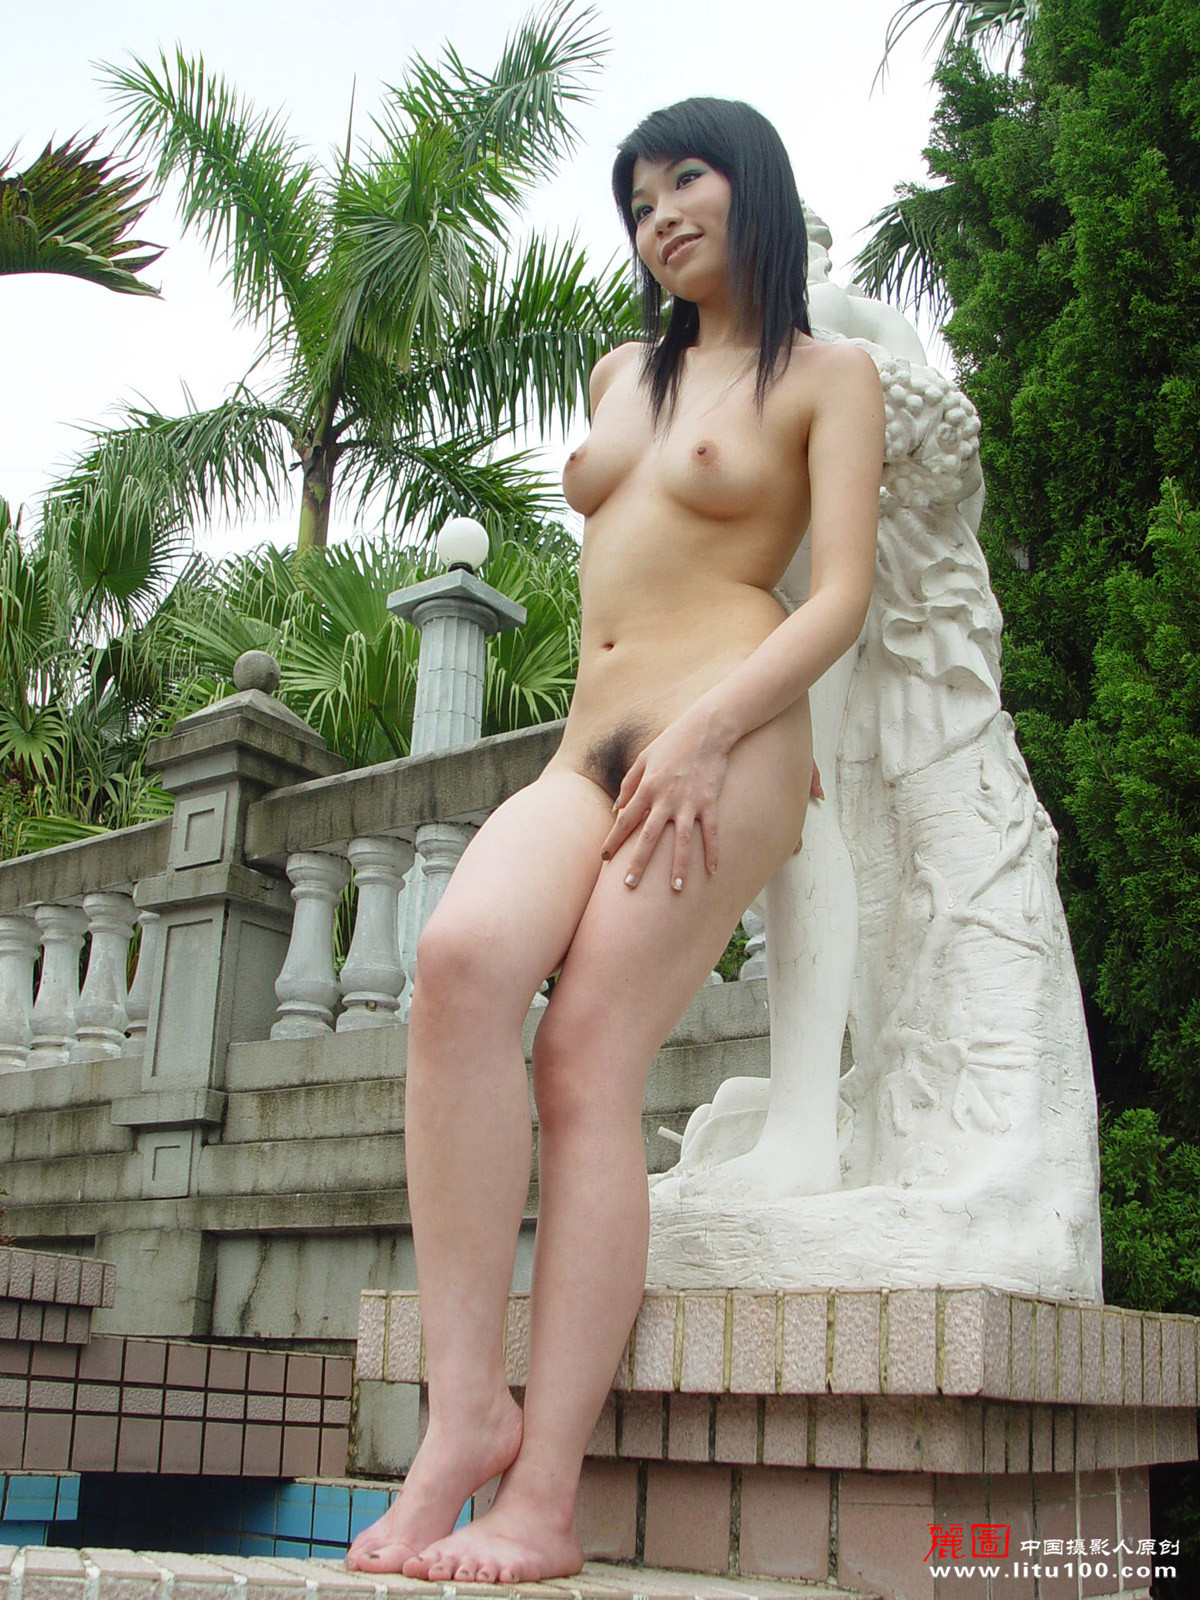 Hong kong artist nude adult famous queen